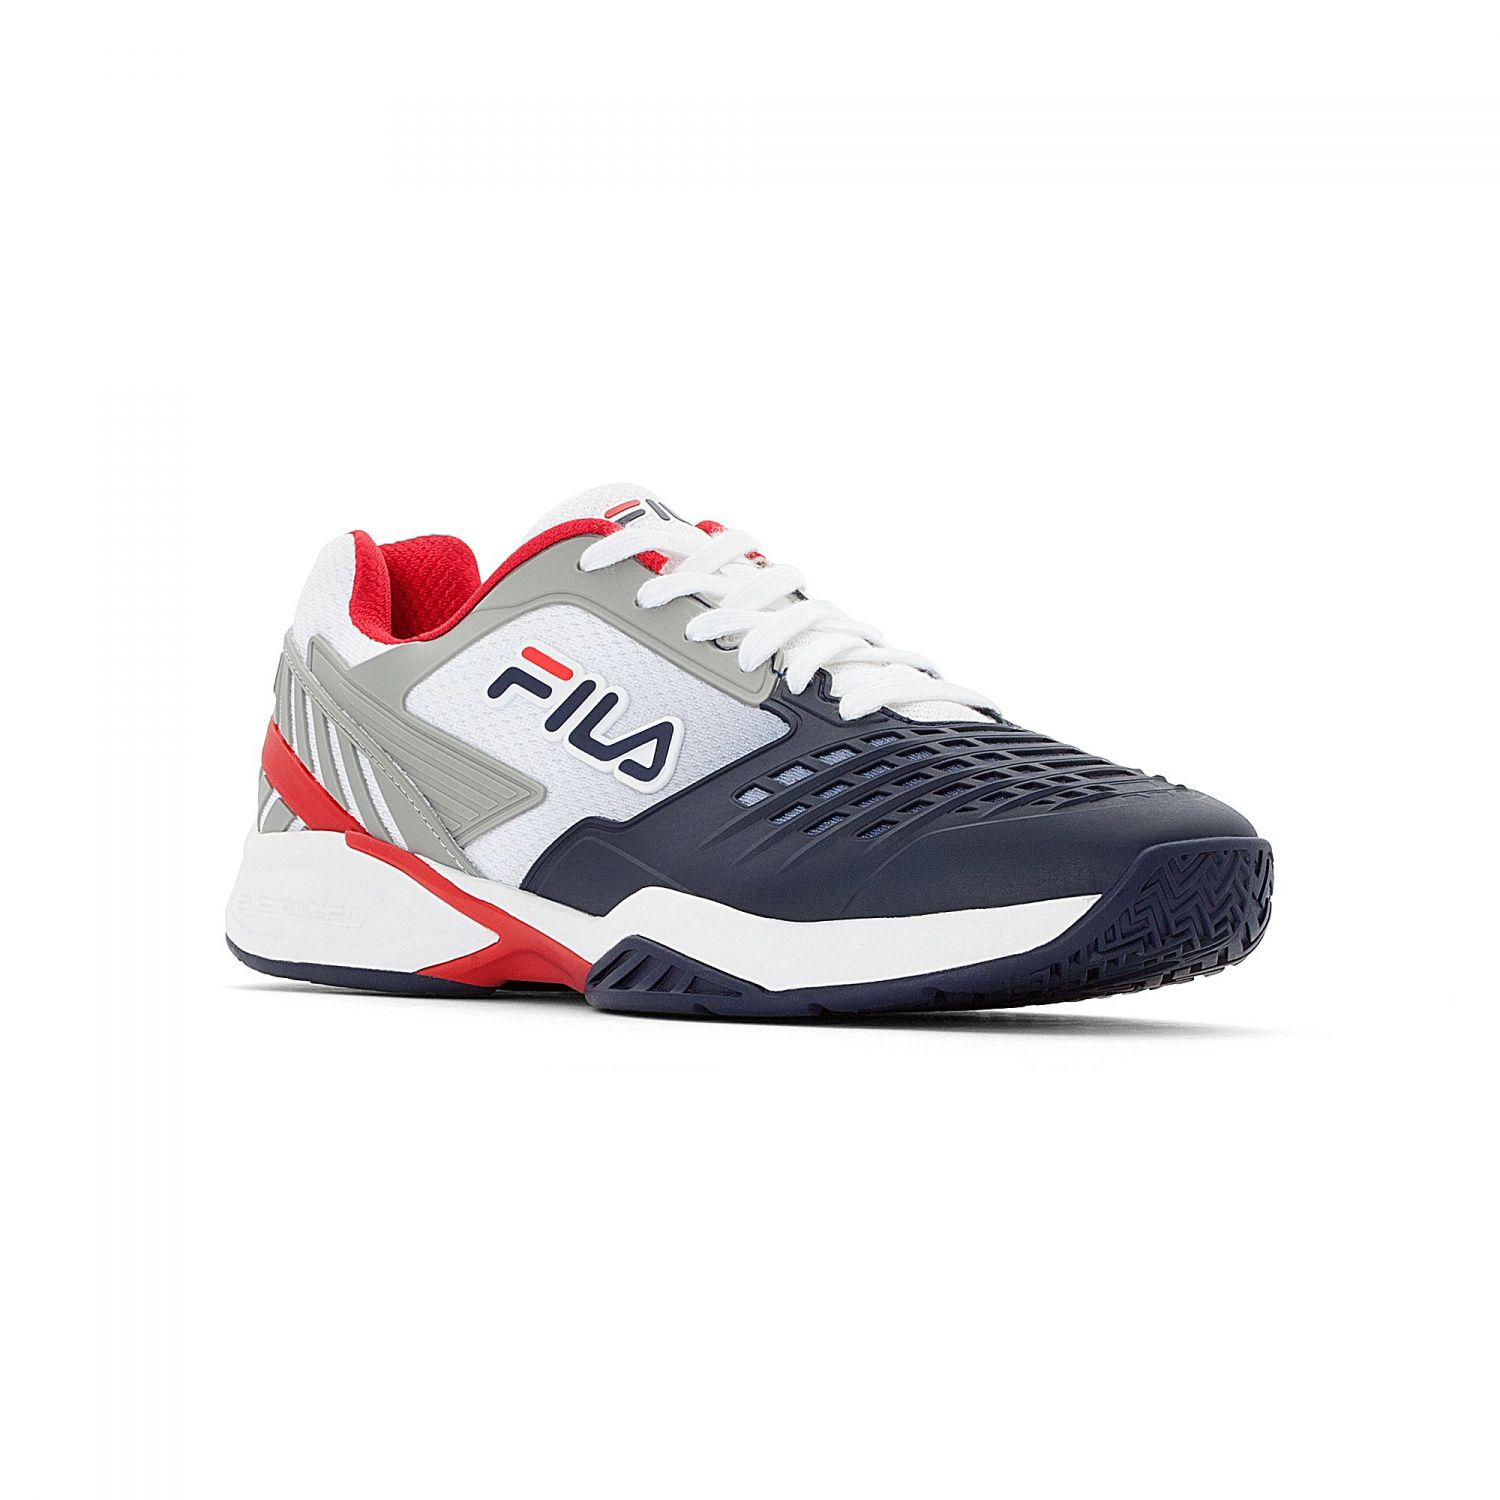 b8b88e1a806d Fila - Axilus 2 Energized Tennis Shoe Men white-navy...